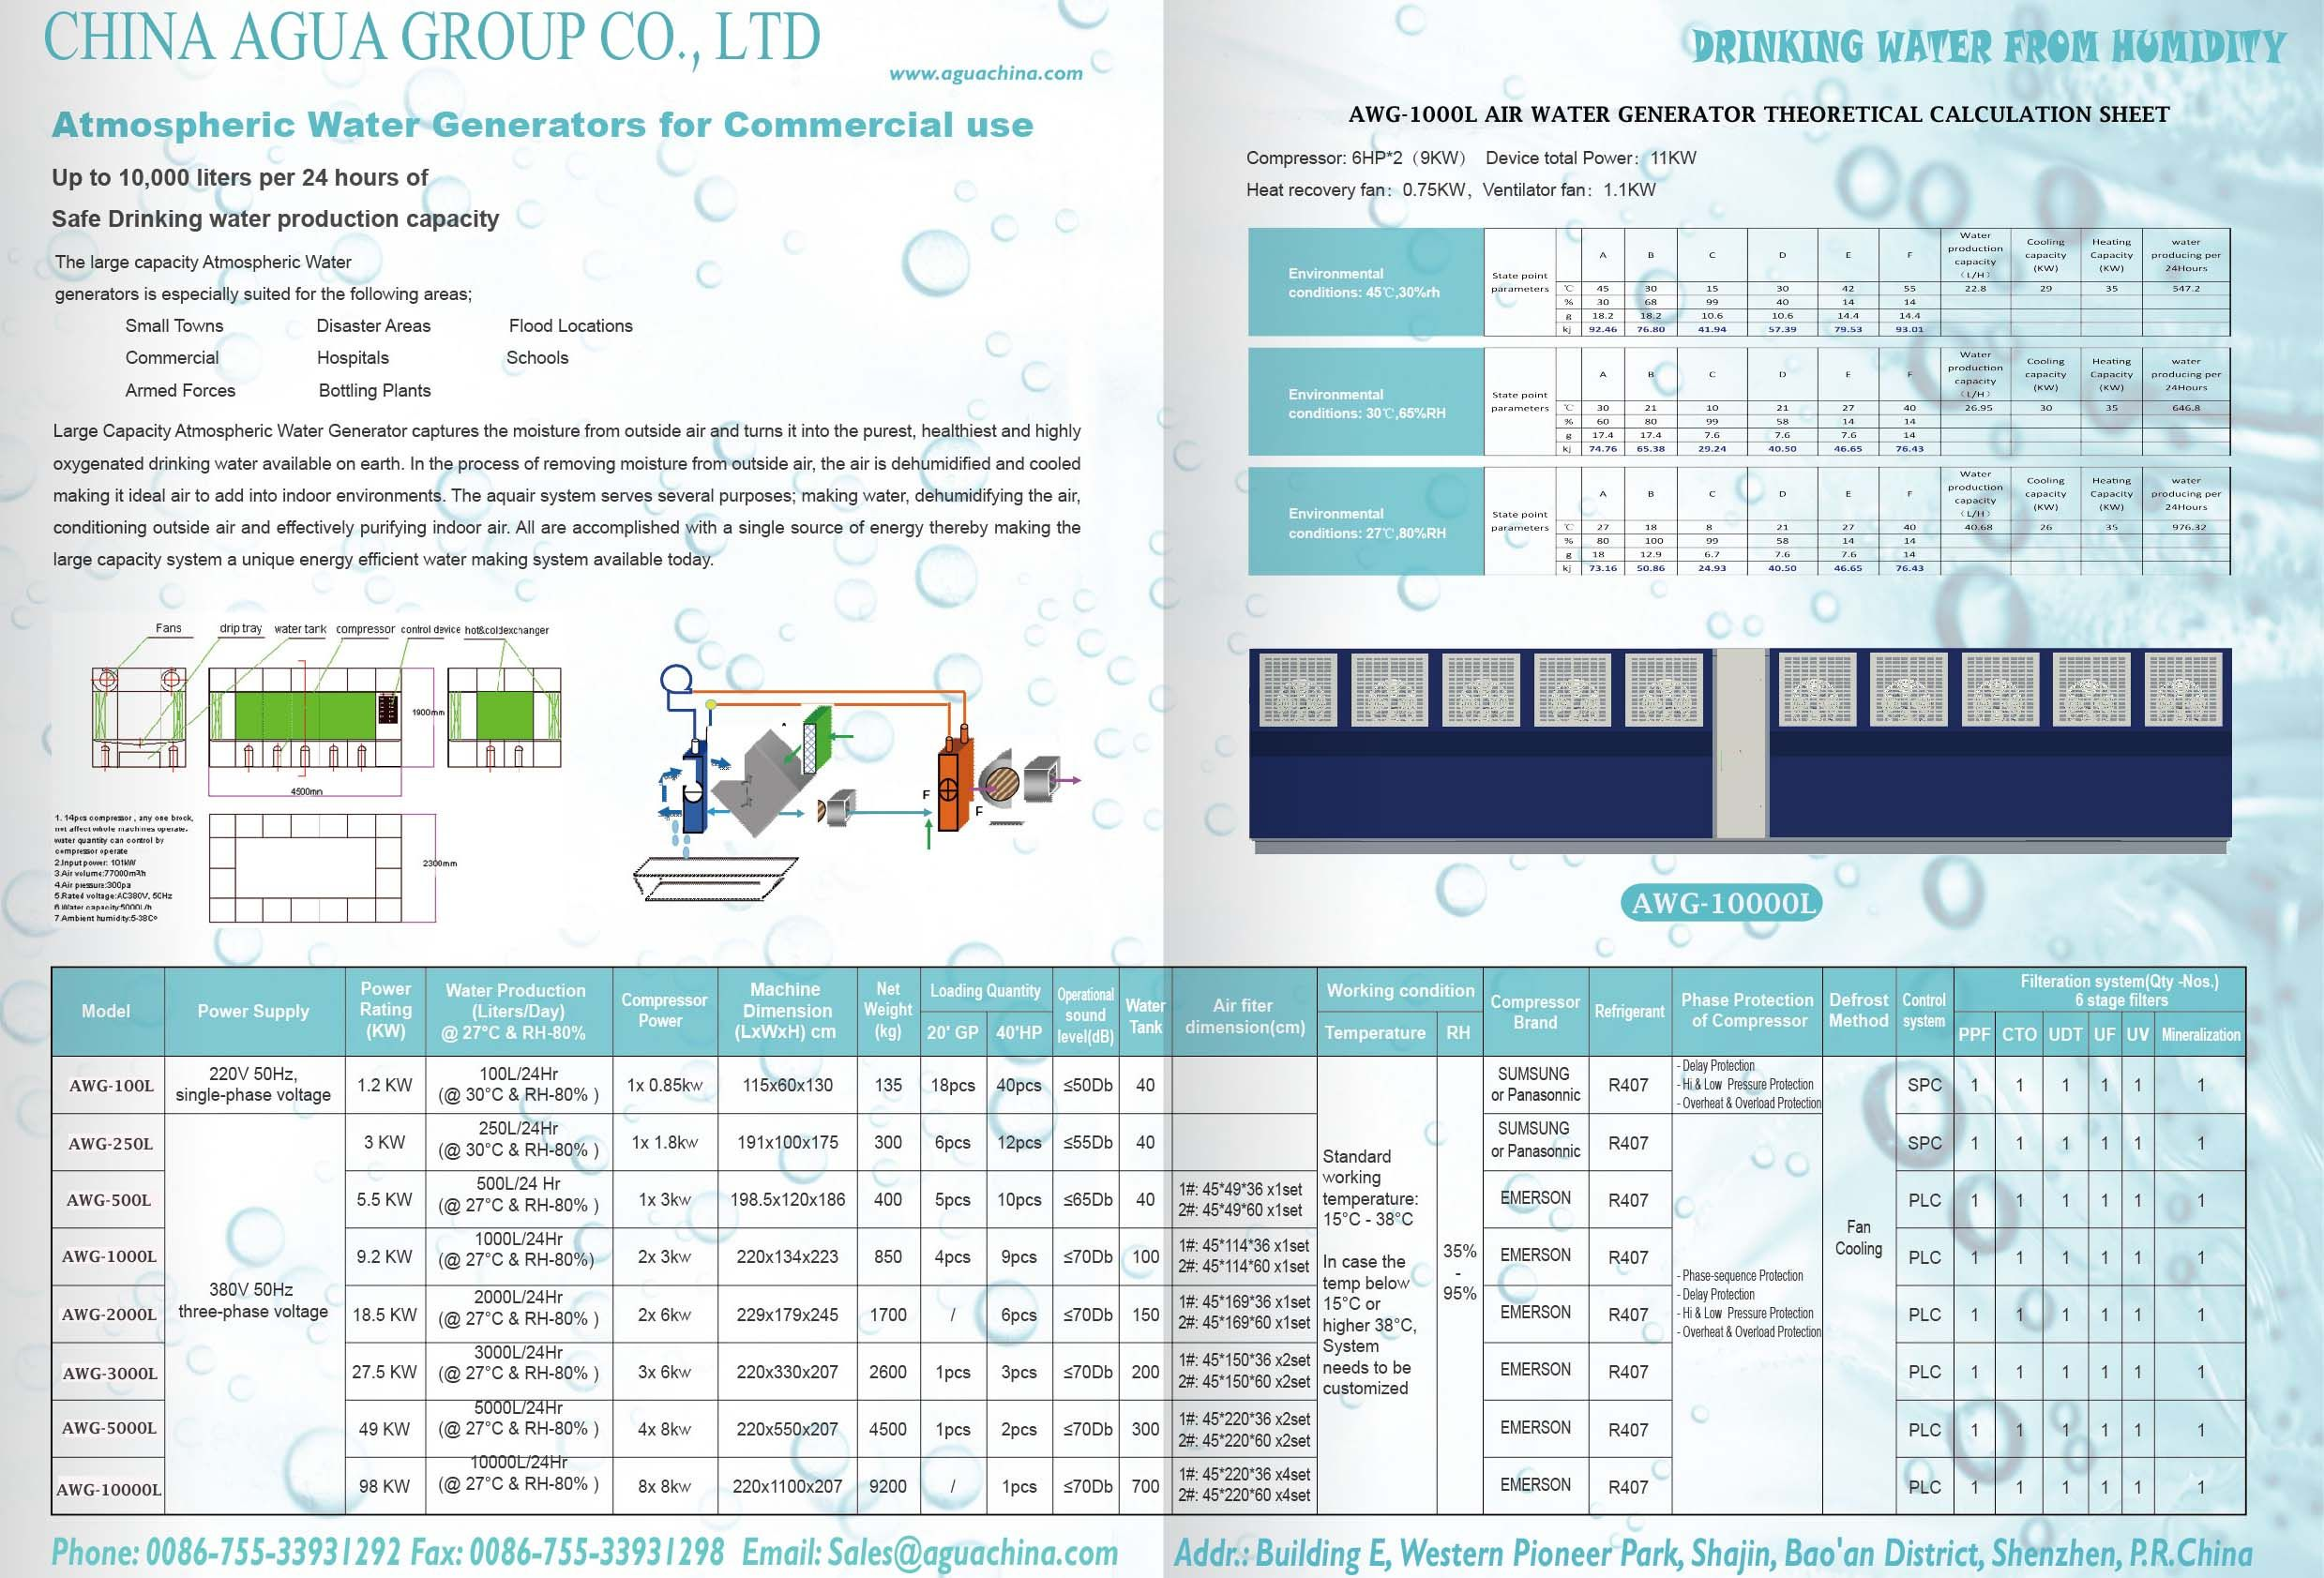 EcoloBlue Industrial units are scaleable and interfaced in